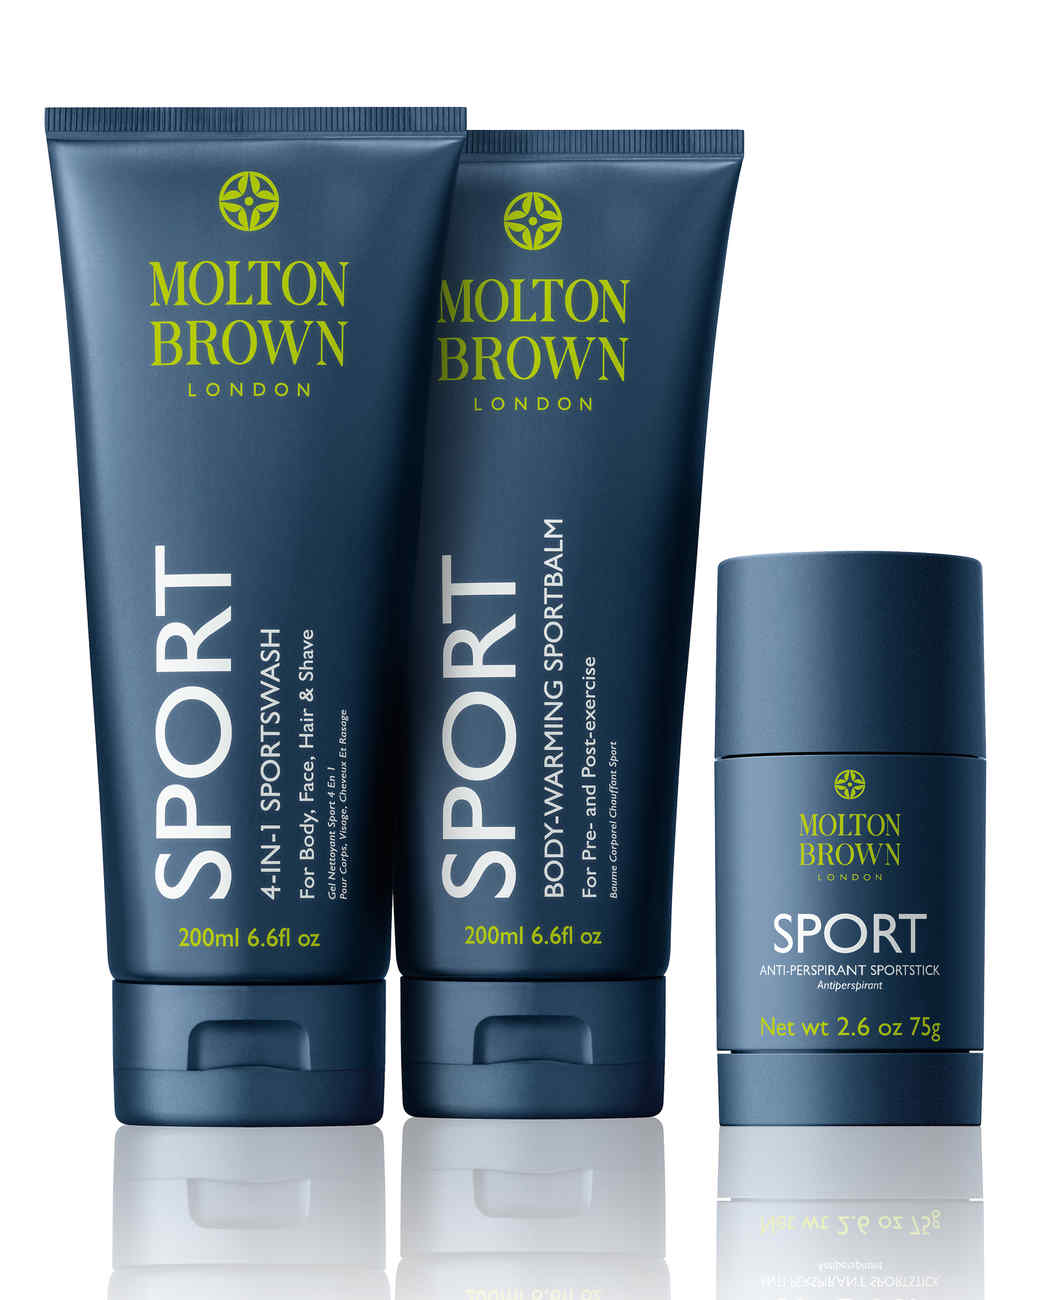 molton-brown-sport-fathers-day-gift-guide.jpg